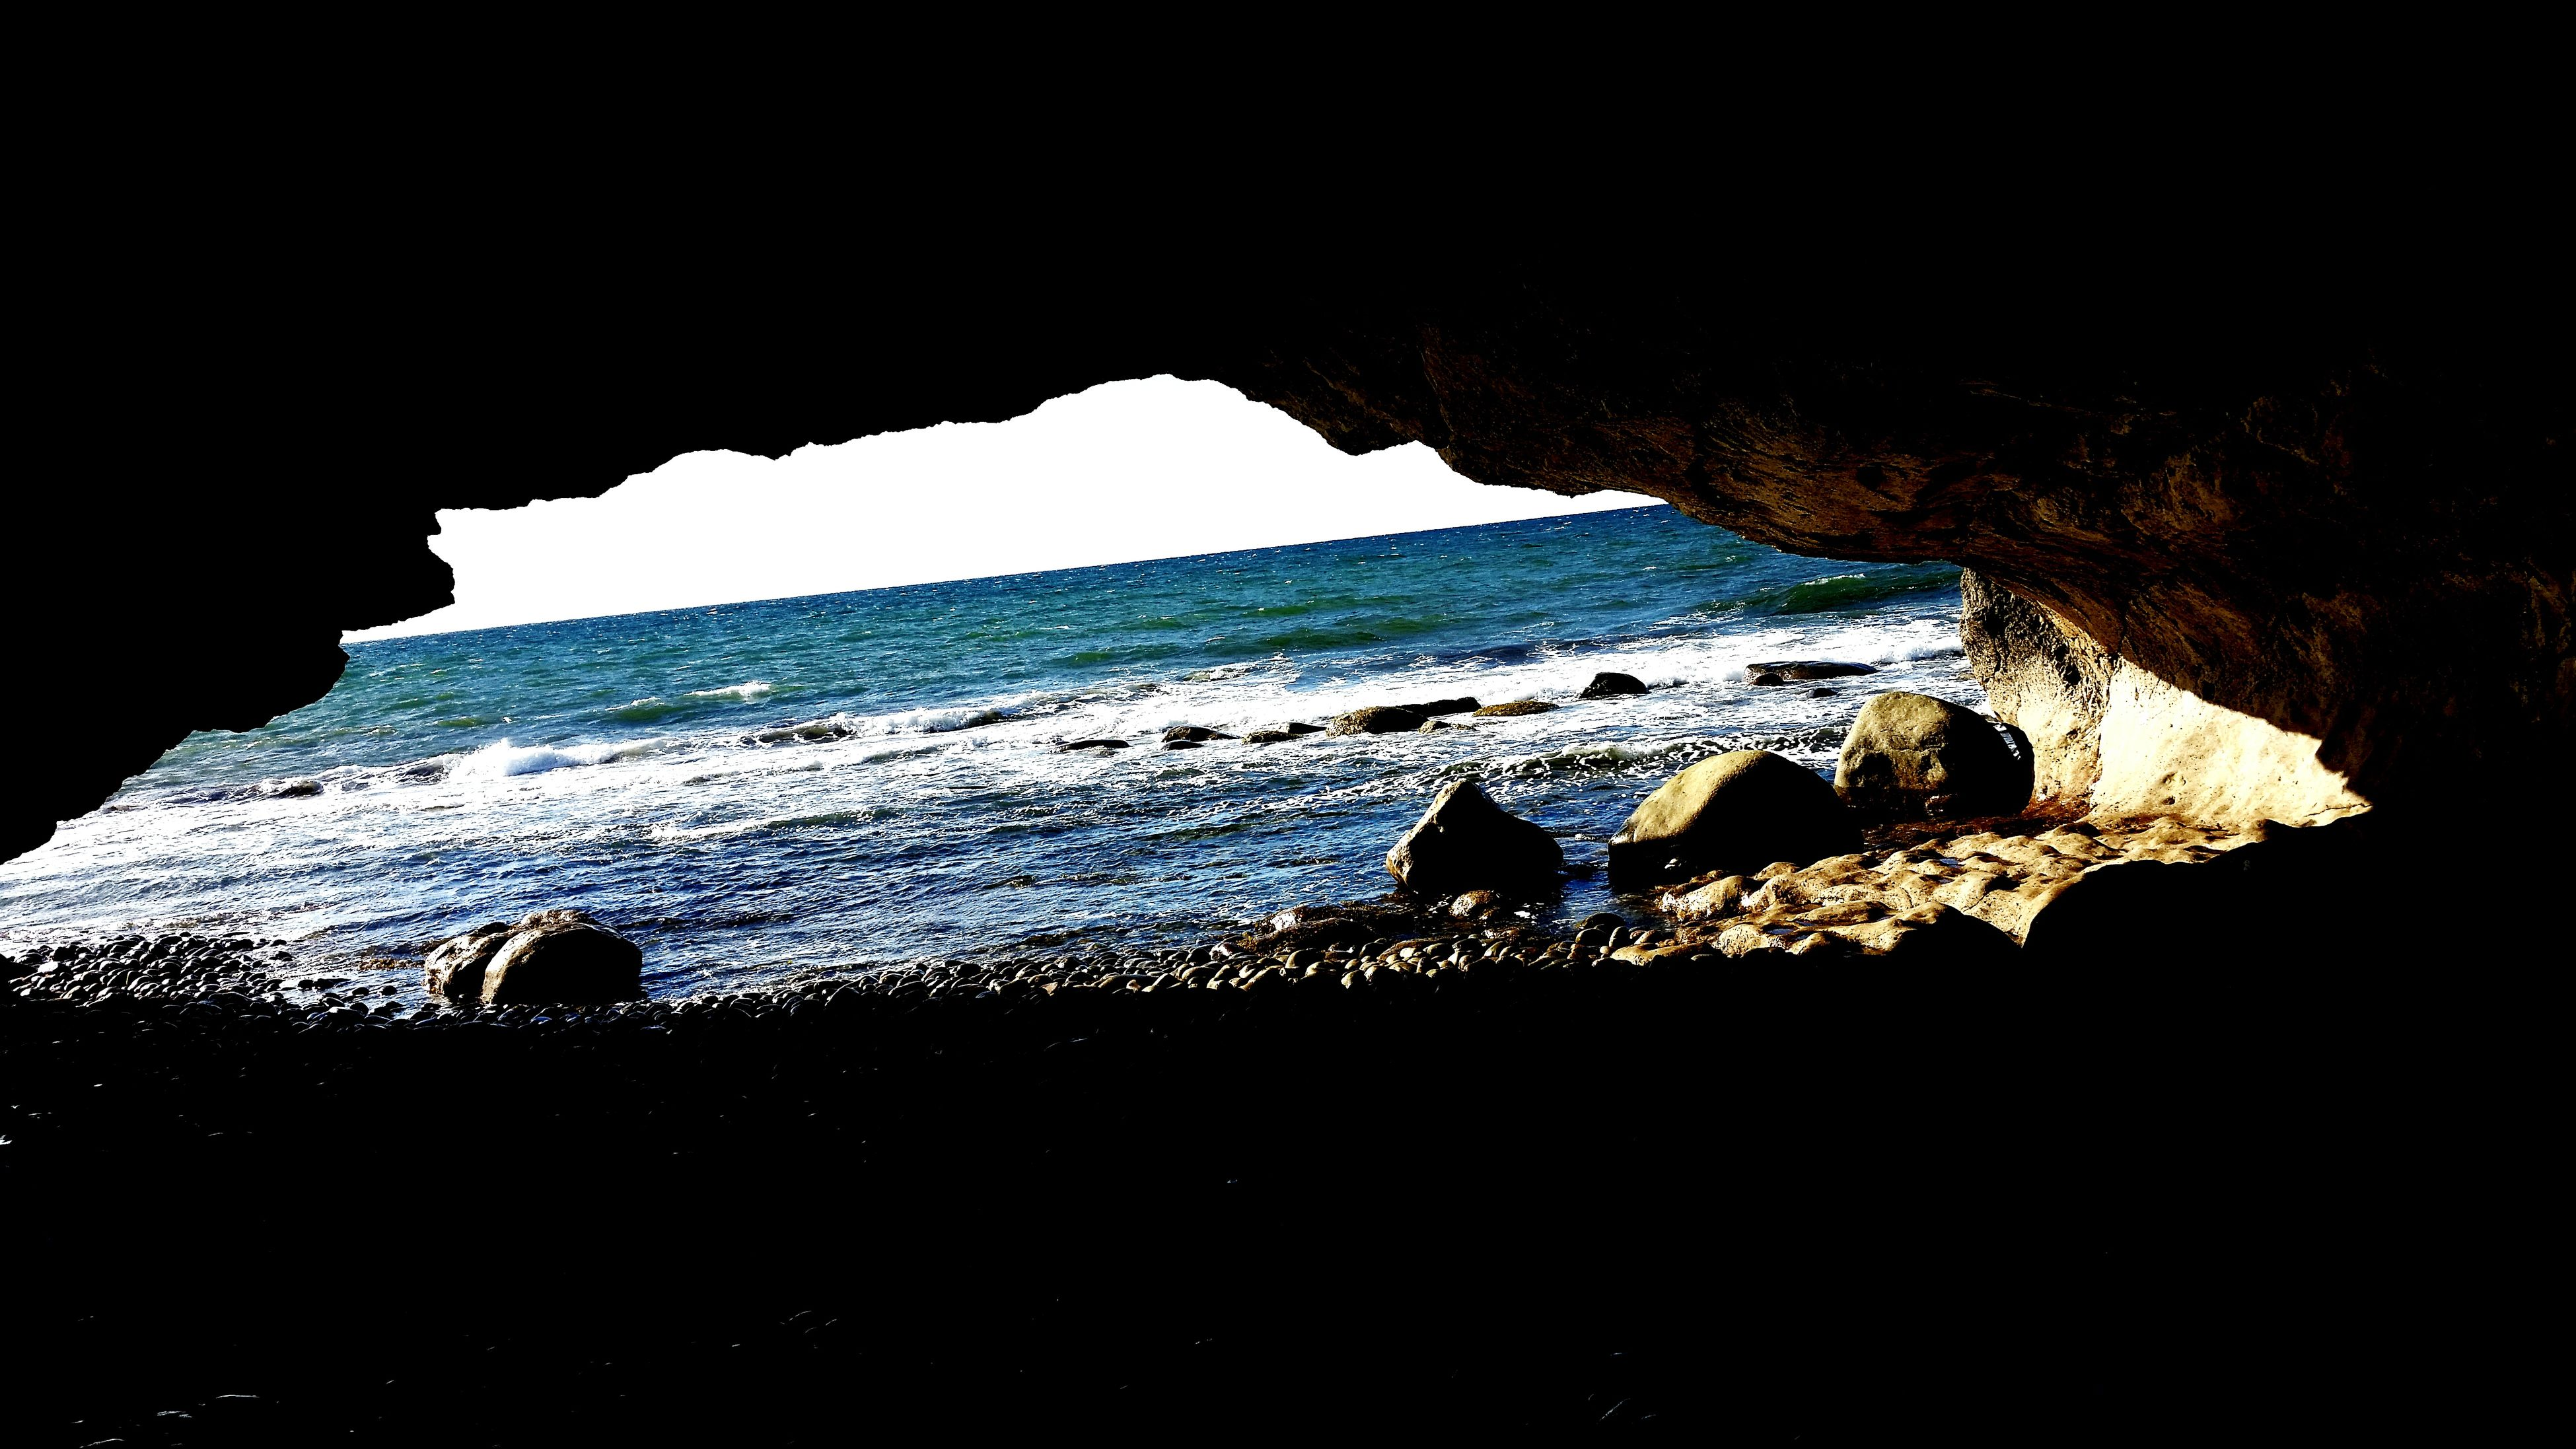 sea, water, horizon over water, scenics, beach, rock formation, beauty in nature, rock - object, tranquility, tranquil scene, sky, nature, shore, silhouette, idyllic, coastline, cliff, indoors, rock, cave